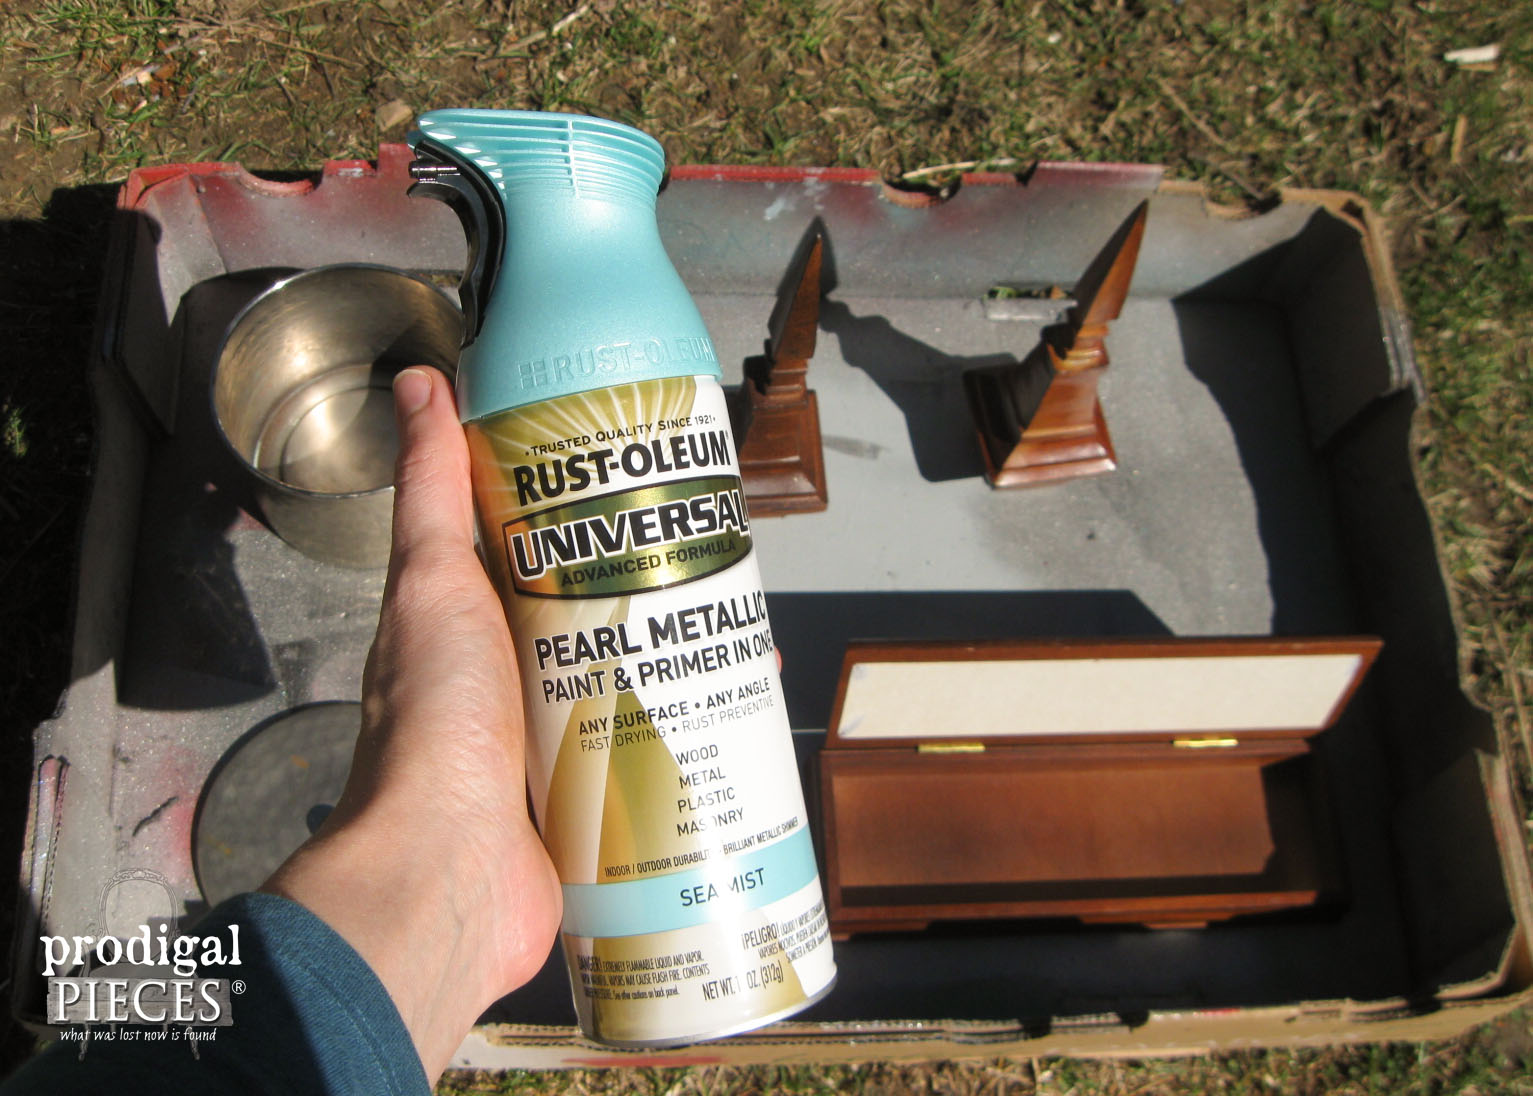 Aqua Blue Sea Mist Spray Paint by Rustoleum | Prodigal PIeces | www.prodigalpieces.com